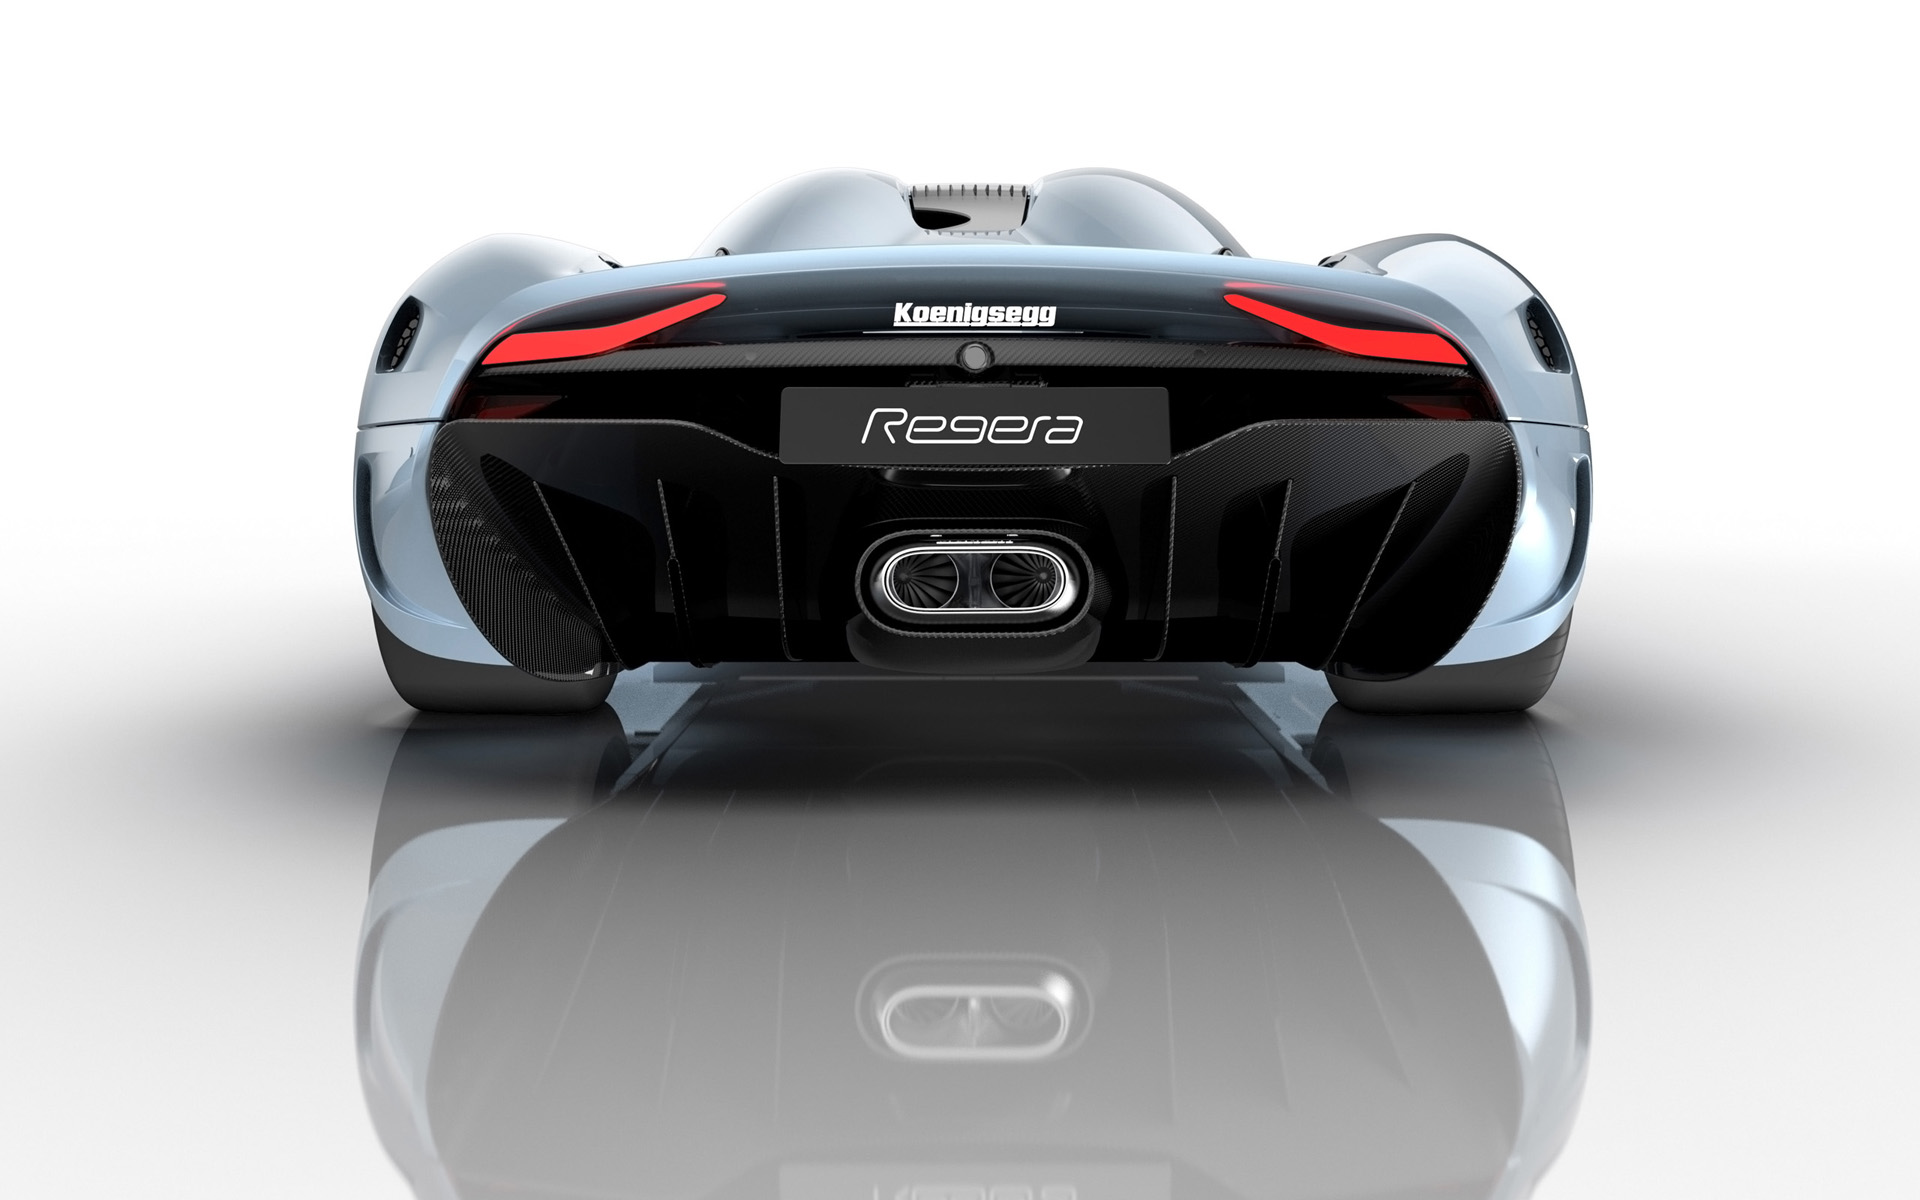 2015 Koenigsegg Regera Rear View Wallpaper 47494 1920x1200px